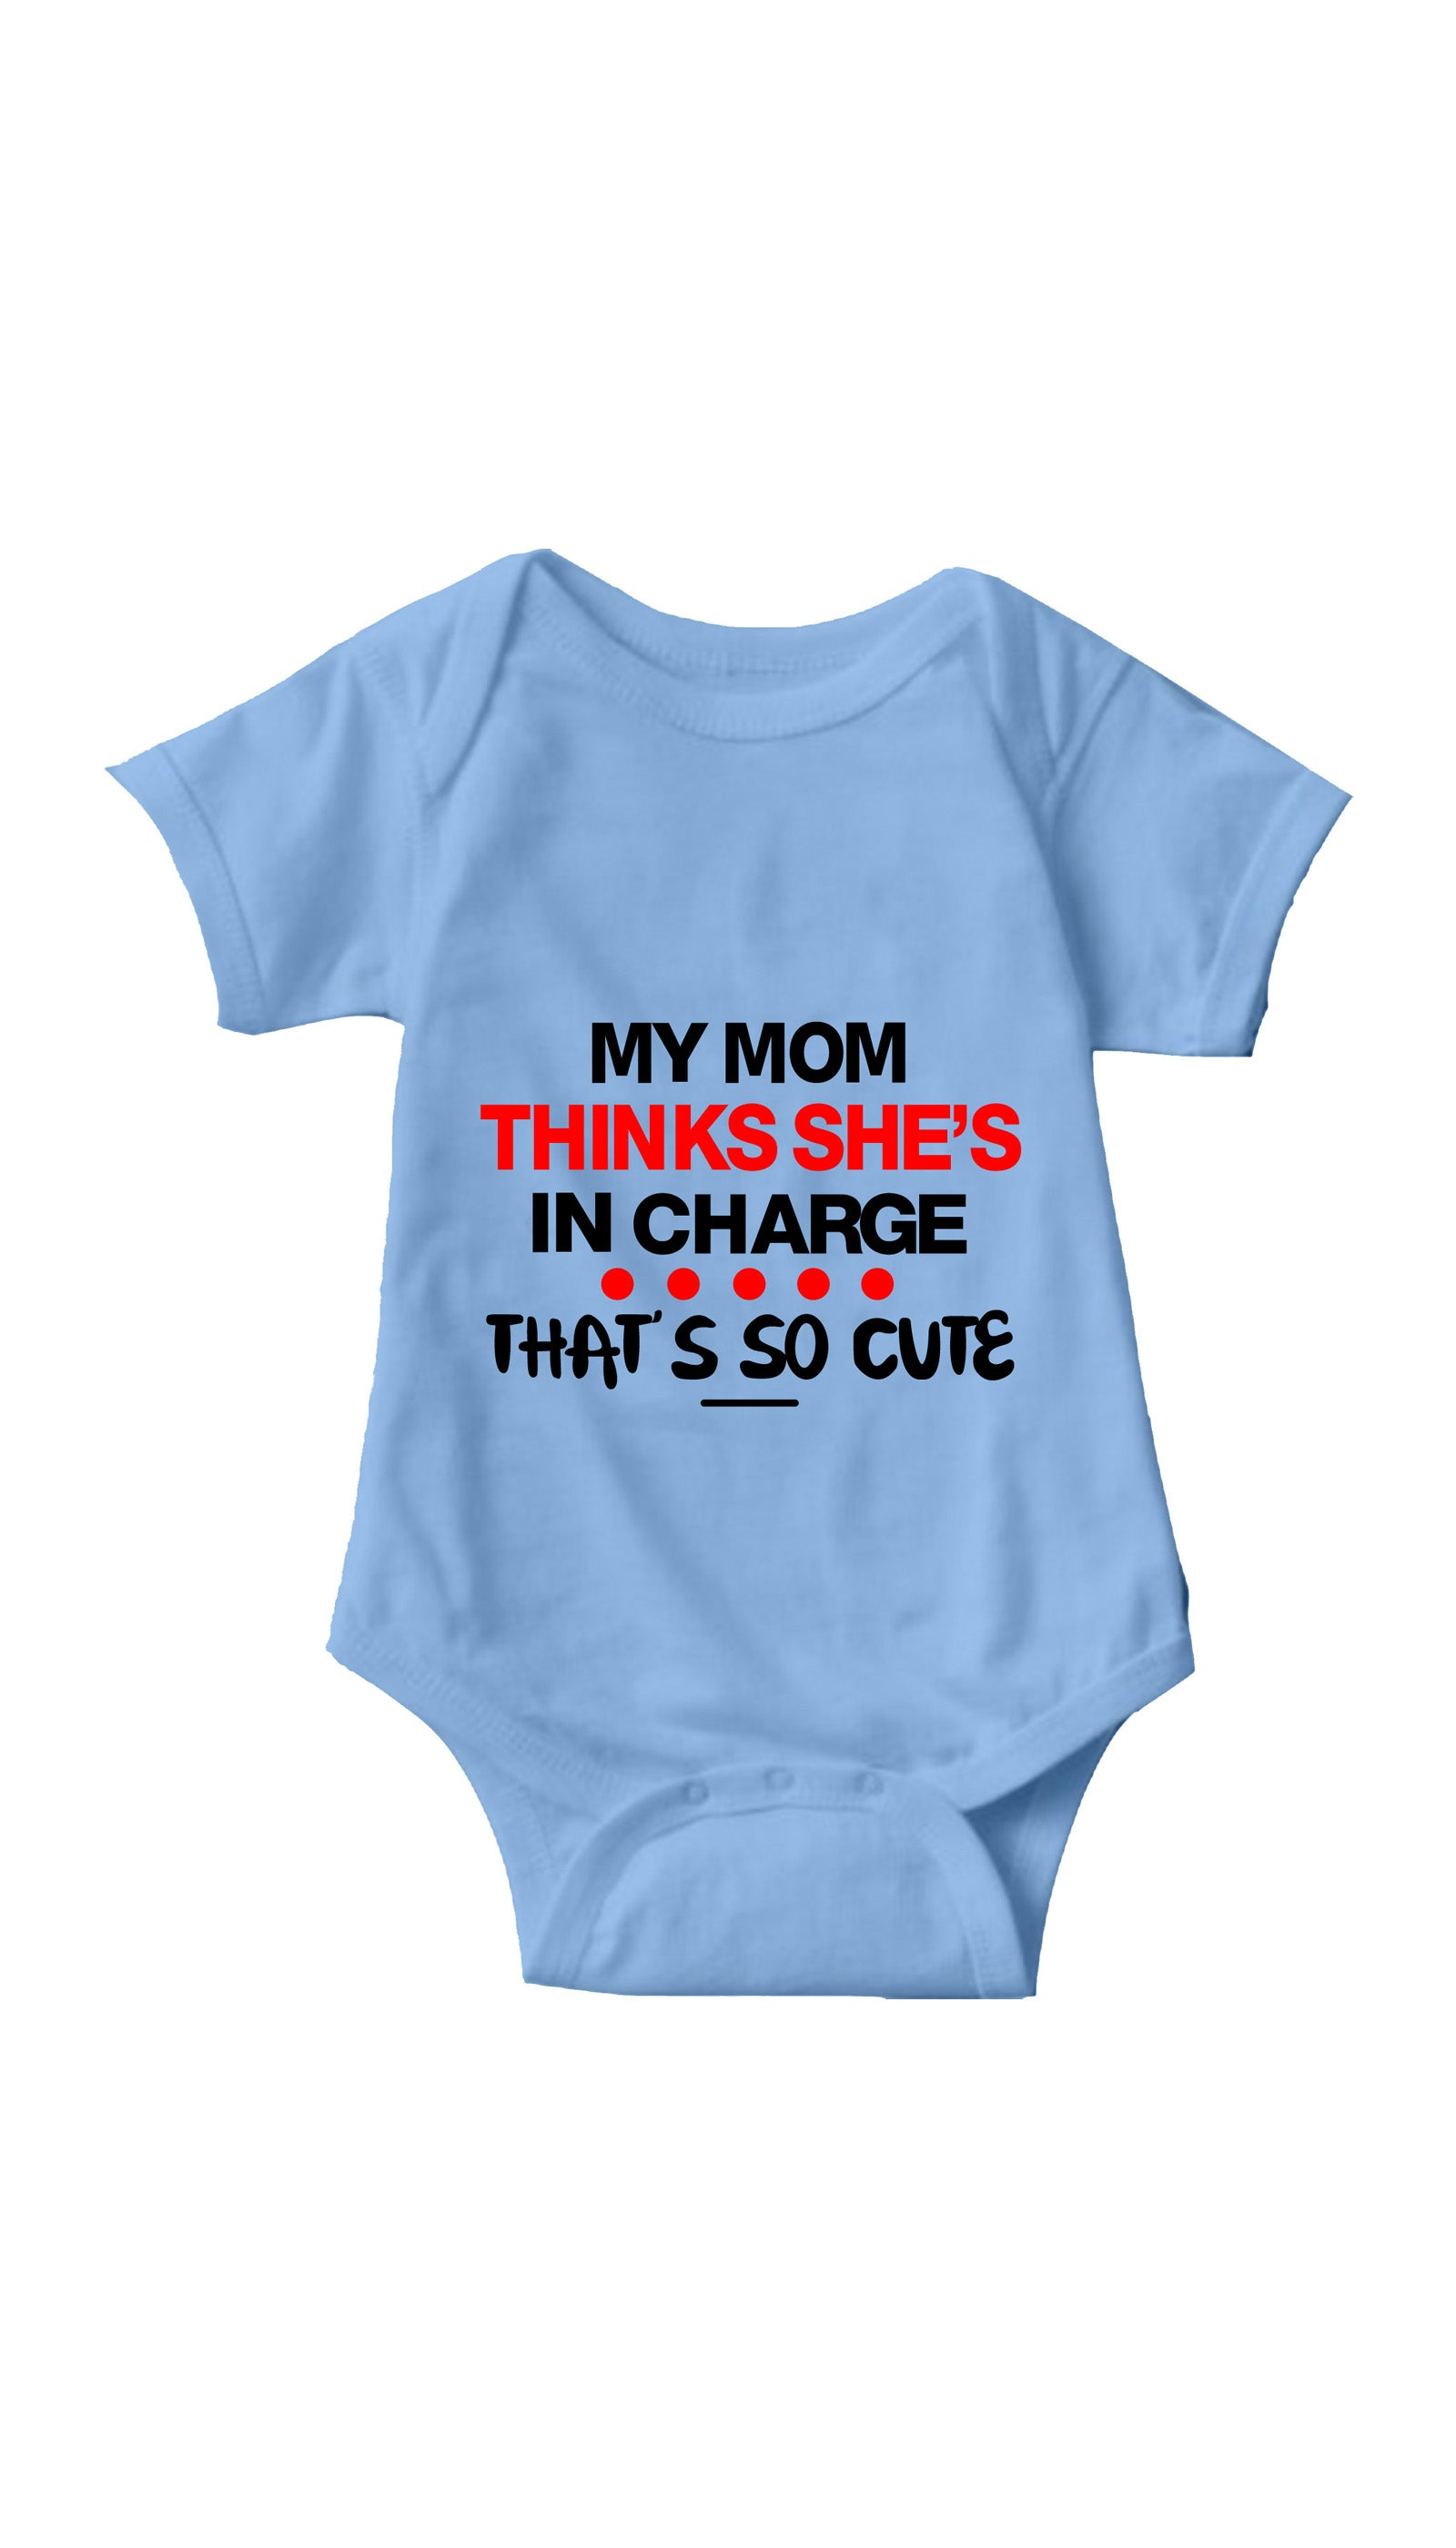 My Mom Thinks She's In Charge Blue Infant Onesie | Sarcastic ME